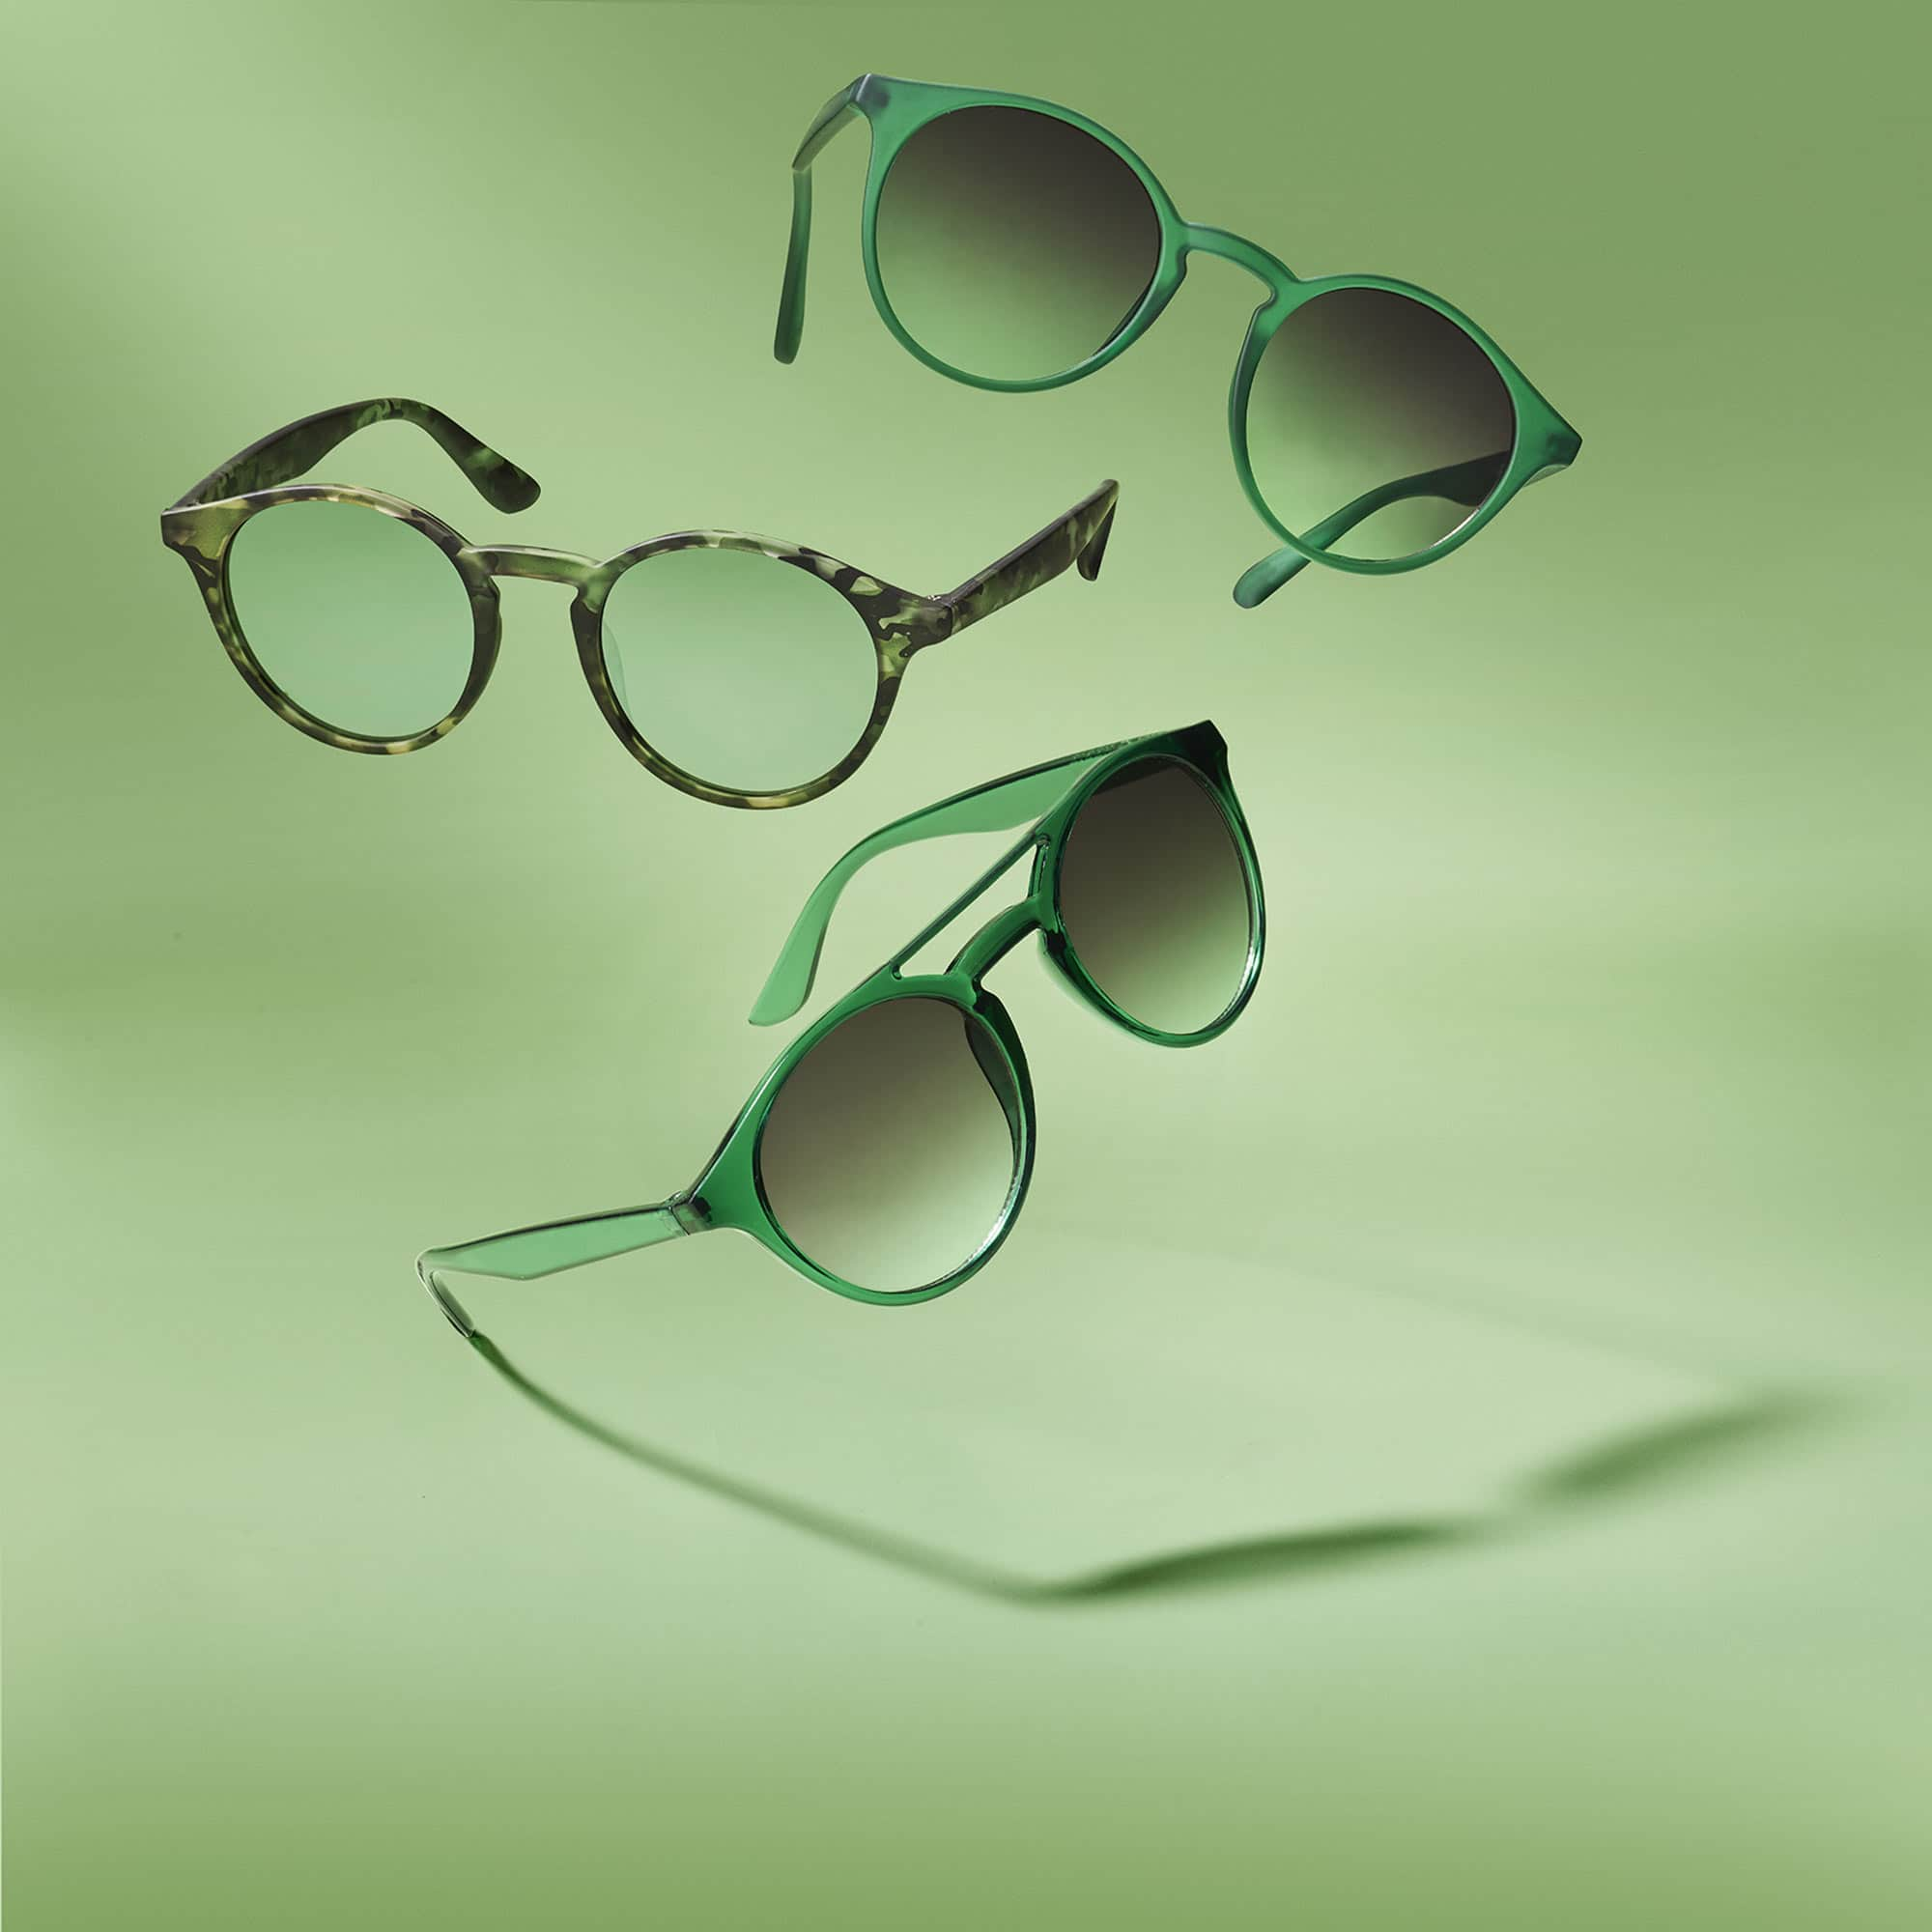 Green Sunglasses Still Life Shot for Corepla by Fotografando